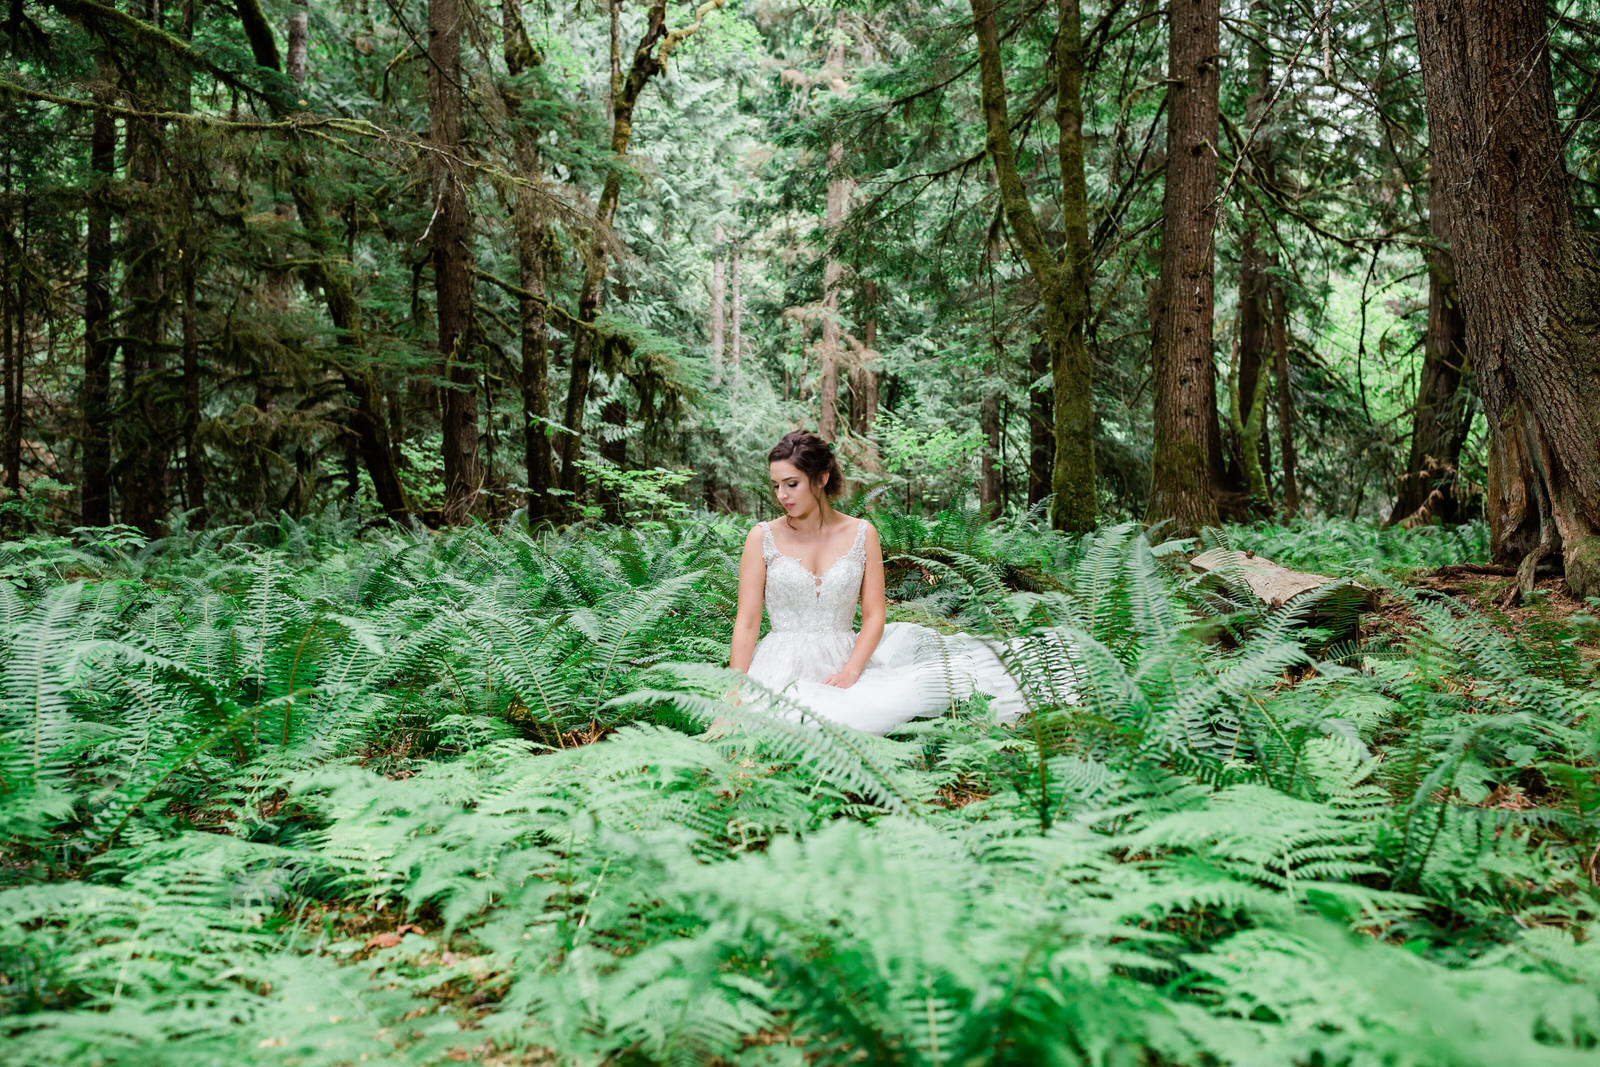 bride surrounded by foliage in a forest wedding